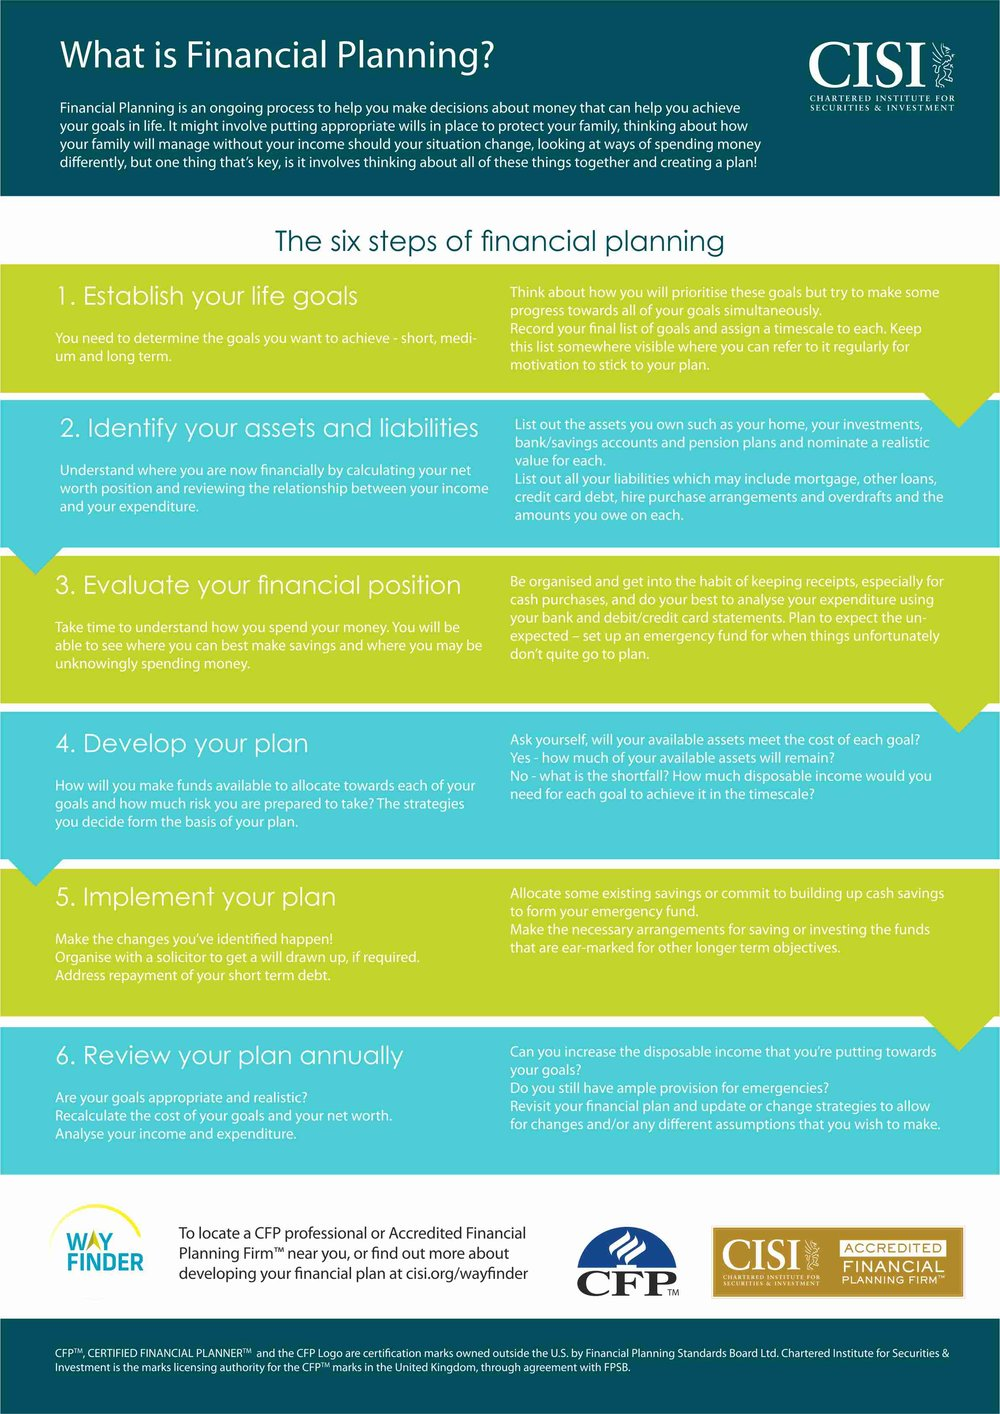 GUIDE TO FINANCIAL PLANNING - The Chartered Institute for Securities and Investment's six step guide to financial planning, the approach to planning used by Lothbury advisers.